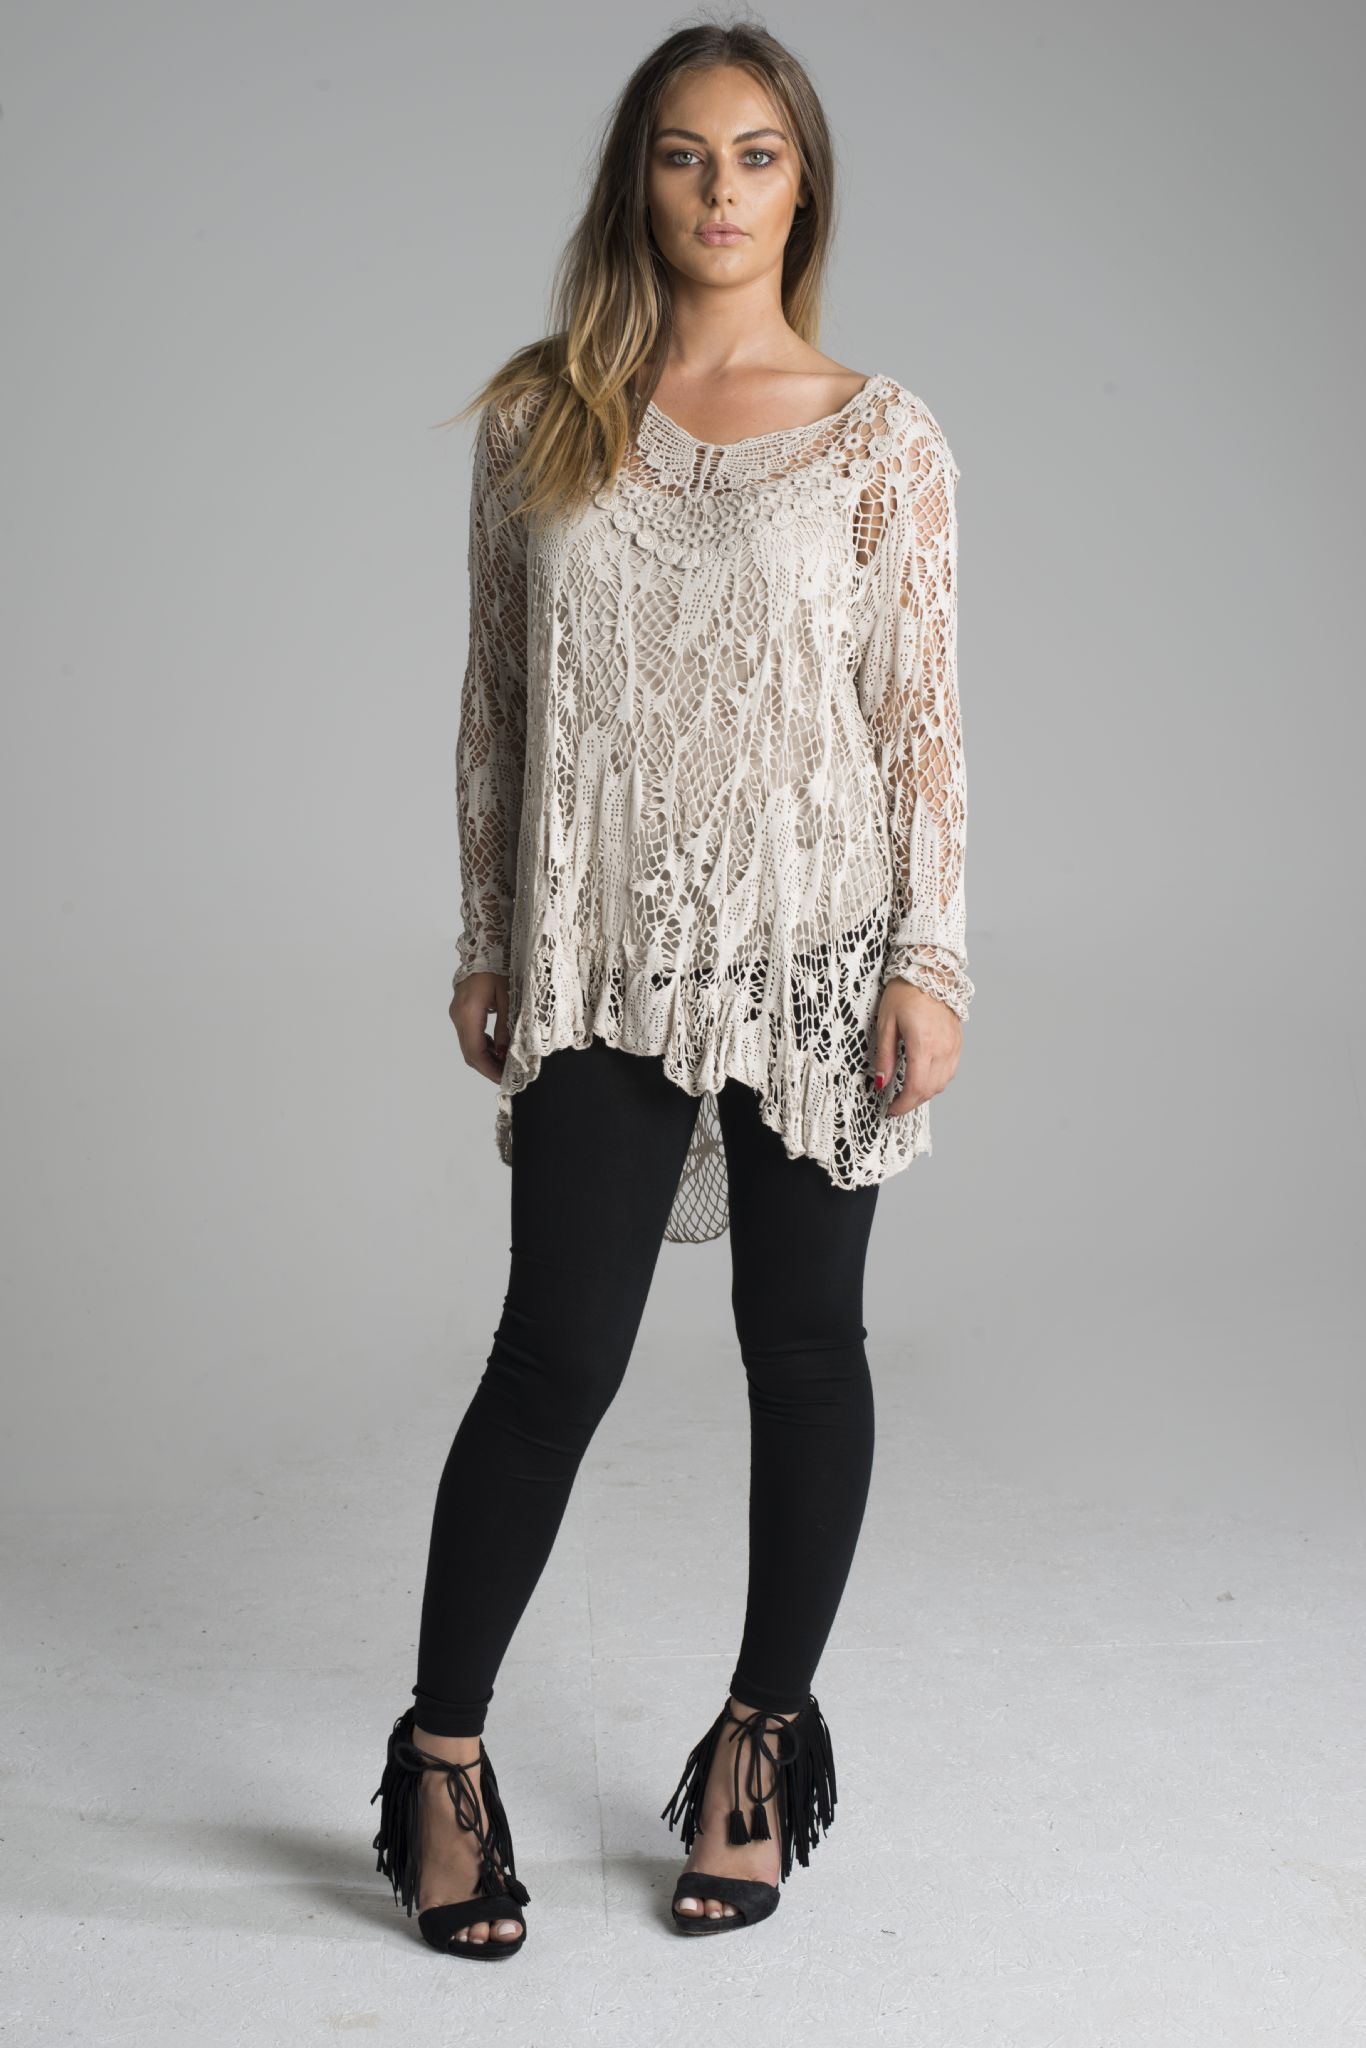 Womens Long Shirts To Wear With Leggings